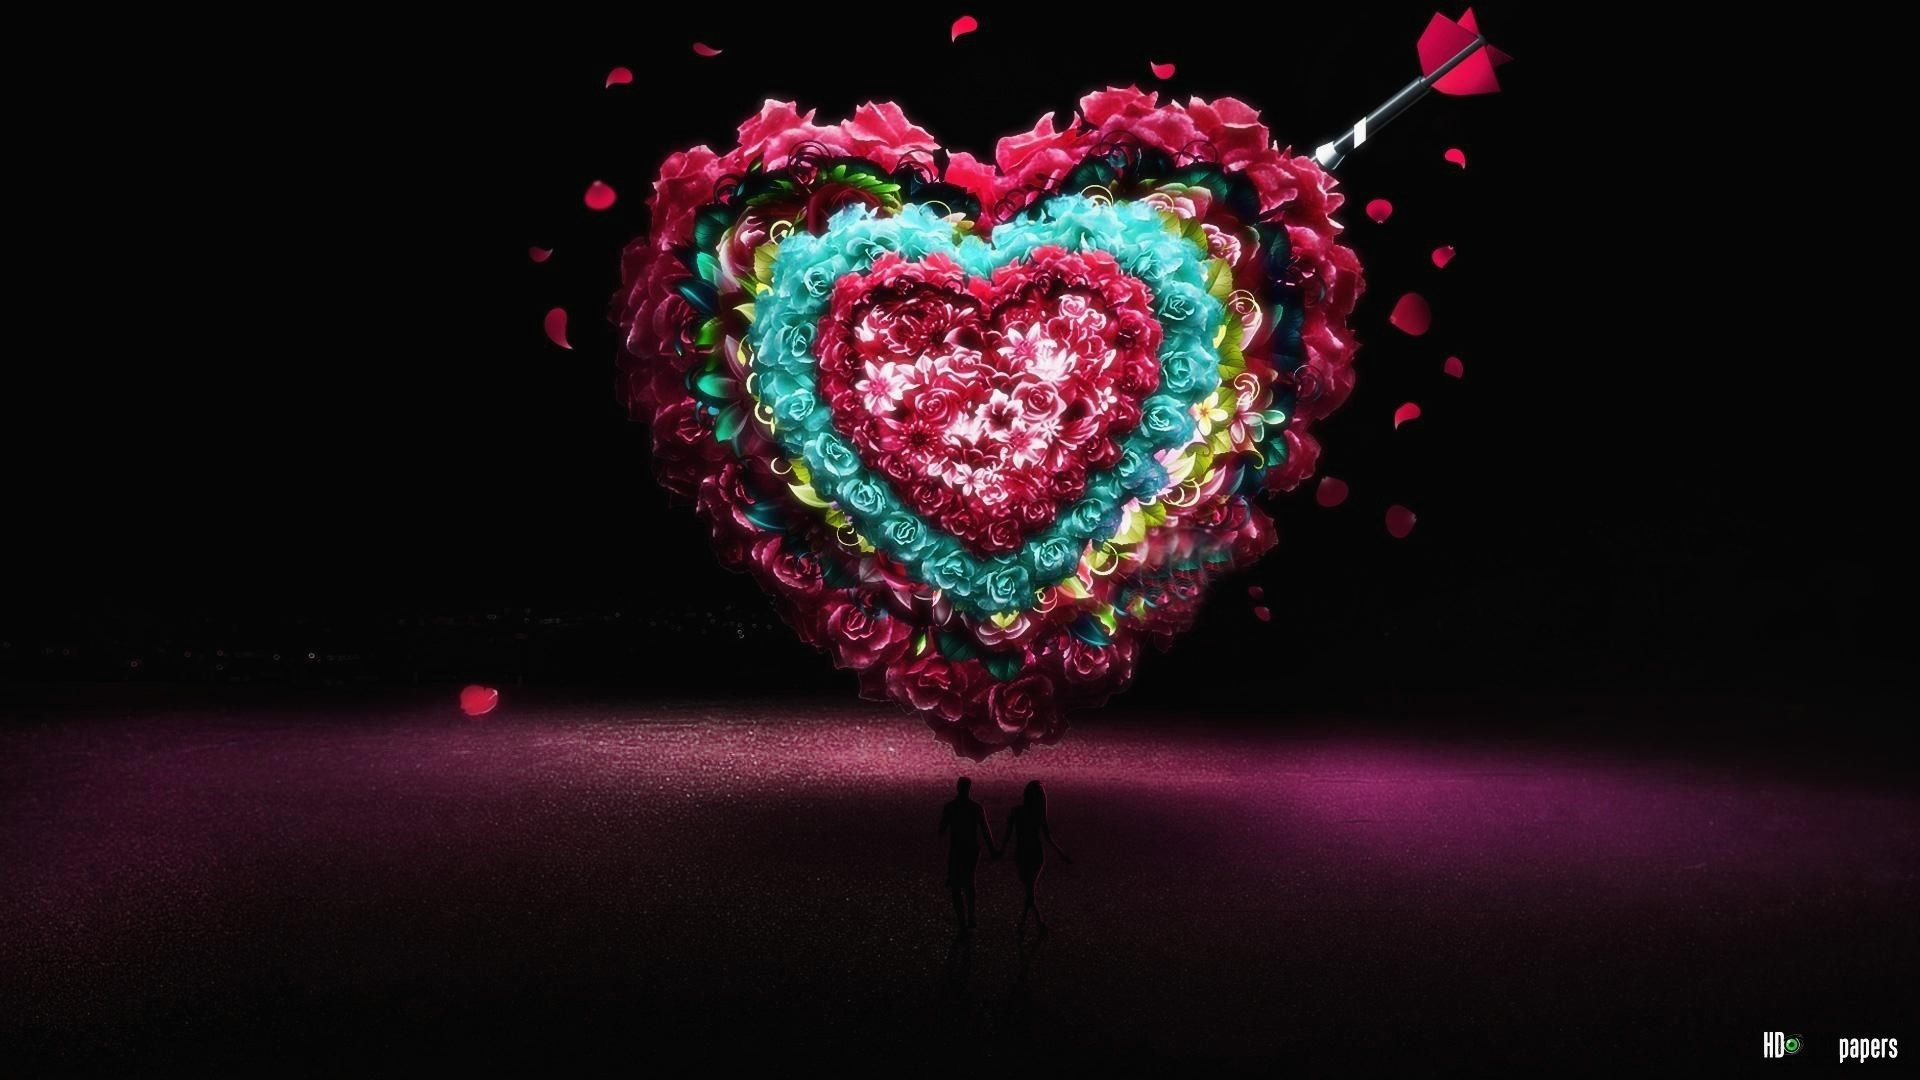 Download Wallpaper For Mobile Of Love Best Of 3d Wallpapers - Super Love Image Hd - HD Wallpaper